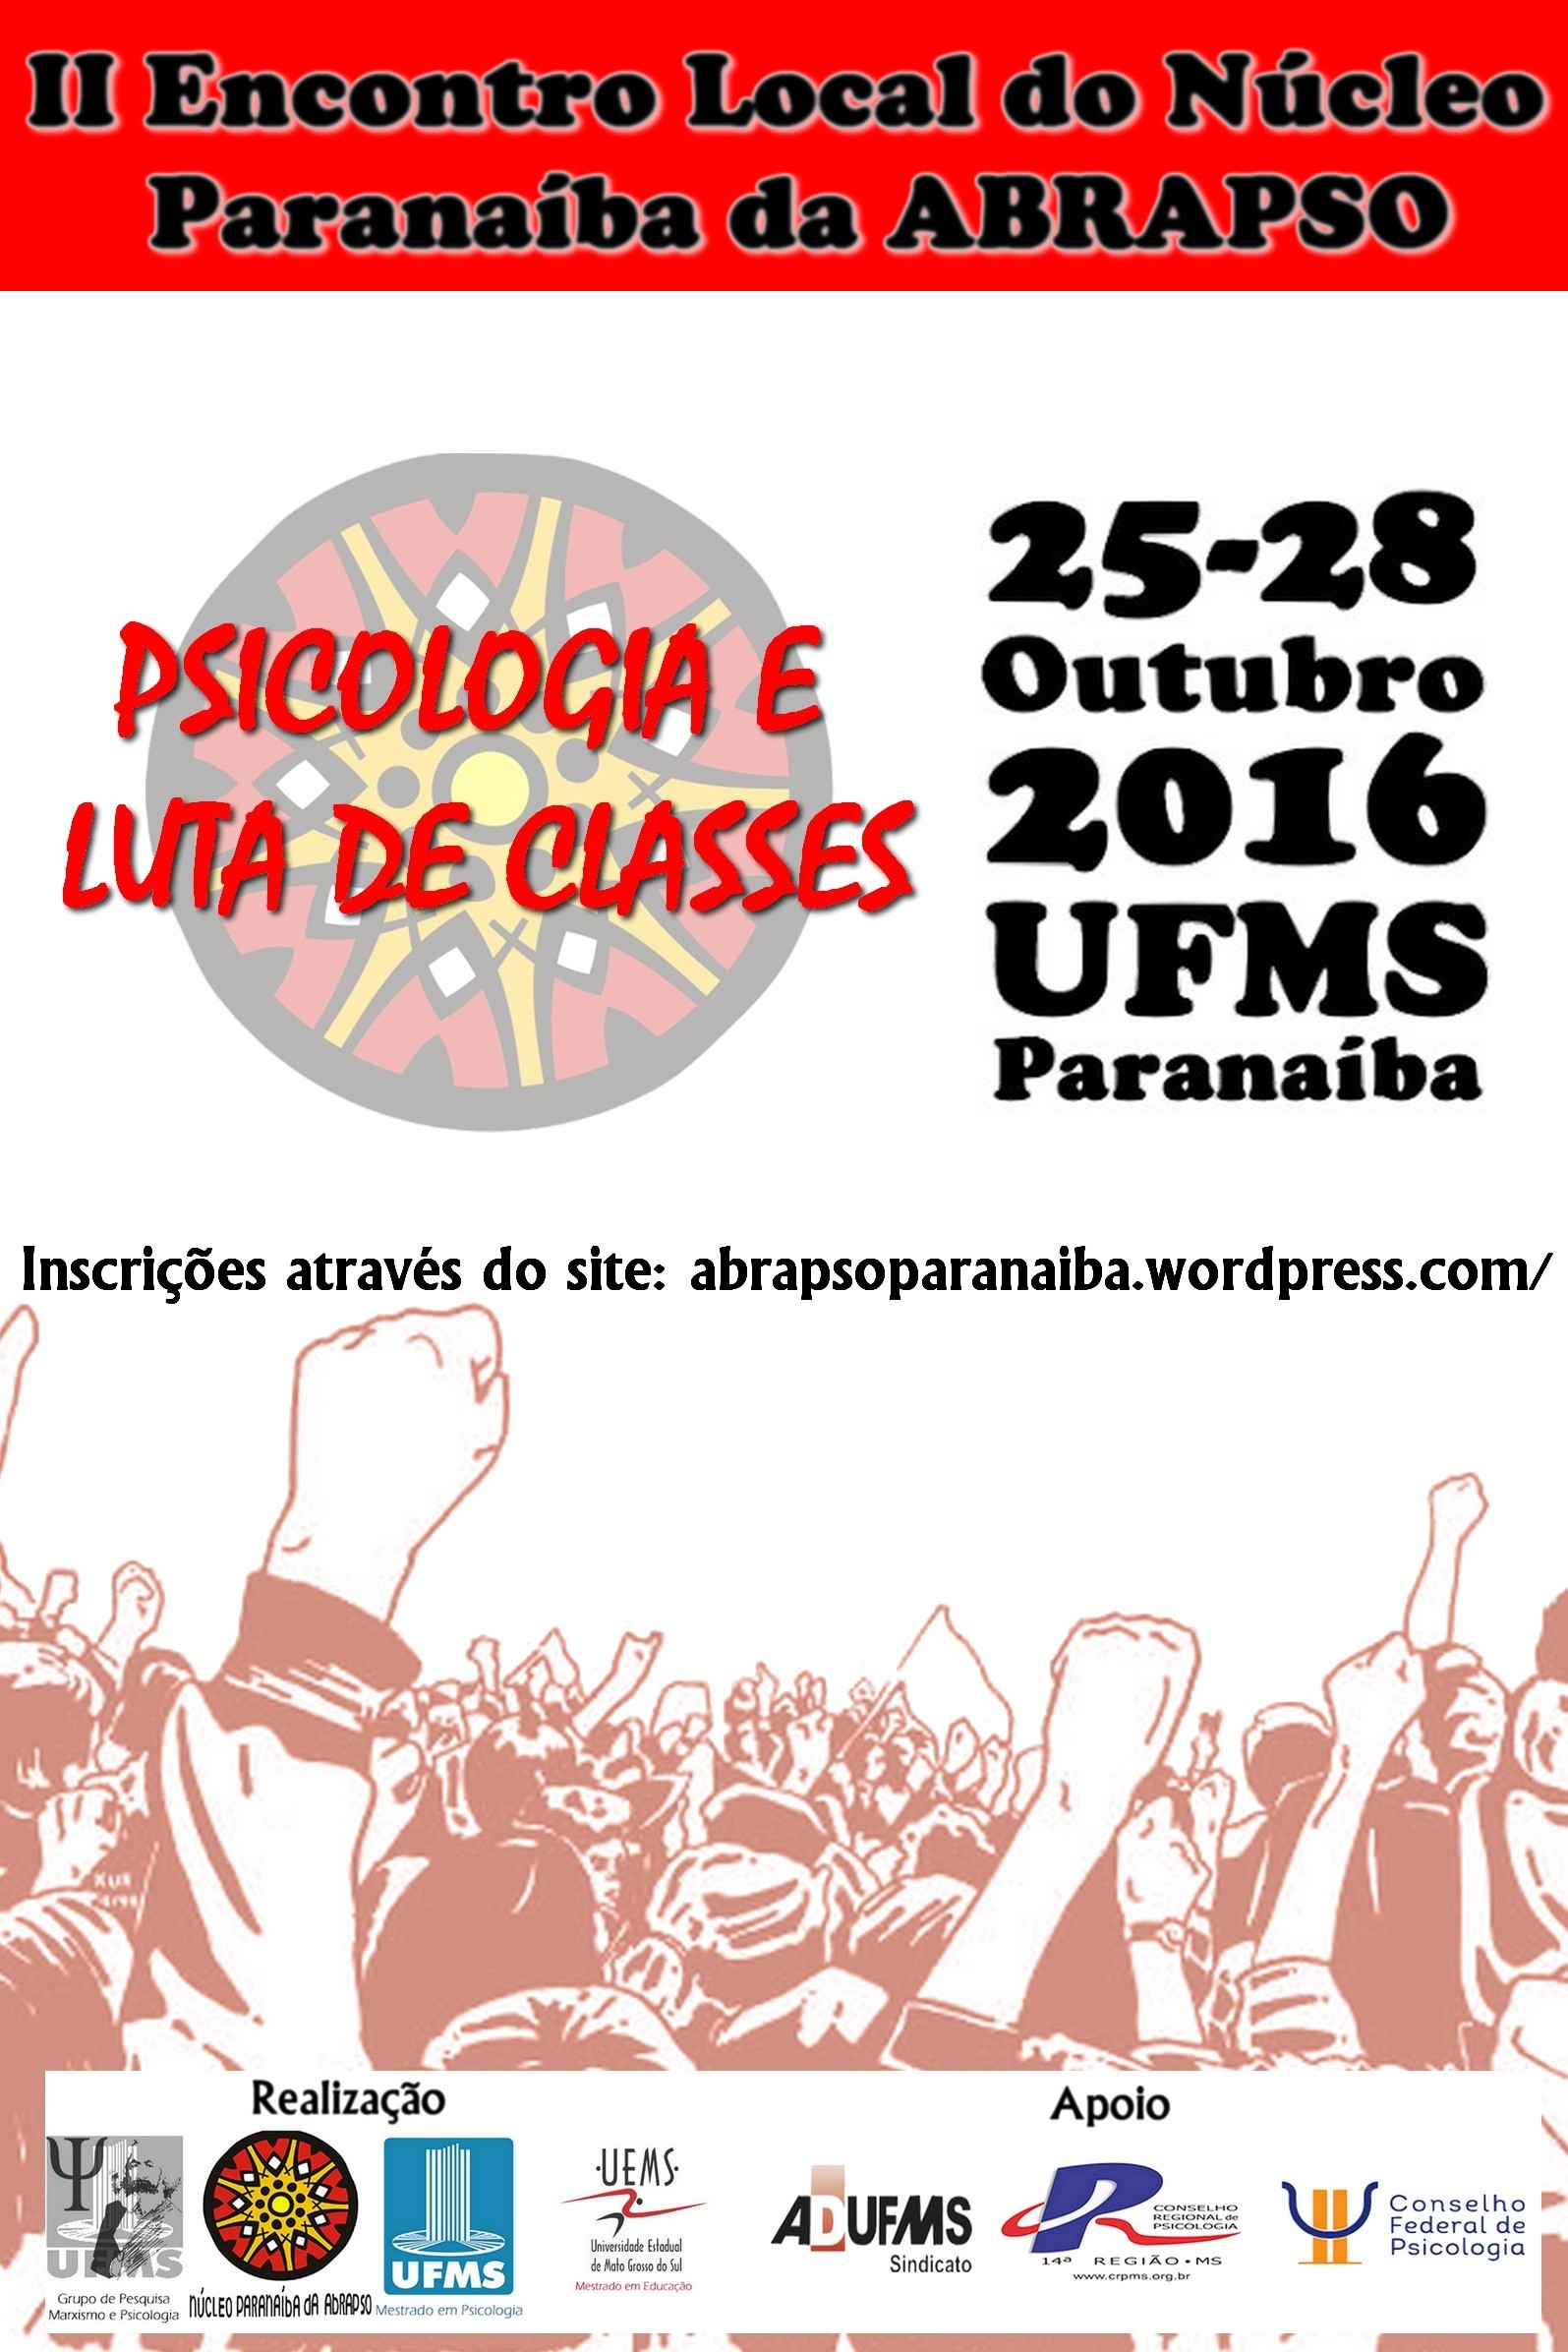 II Encontro do Núcleo Paranaíba da ABRAPSO: Psicologia e Luta de Classes